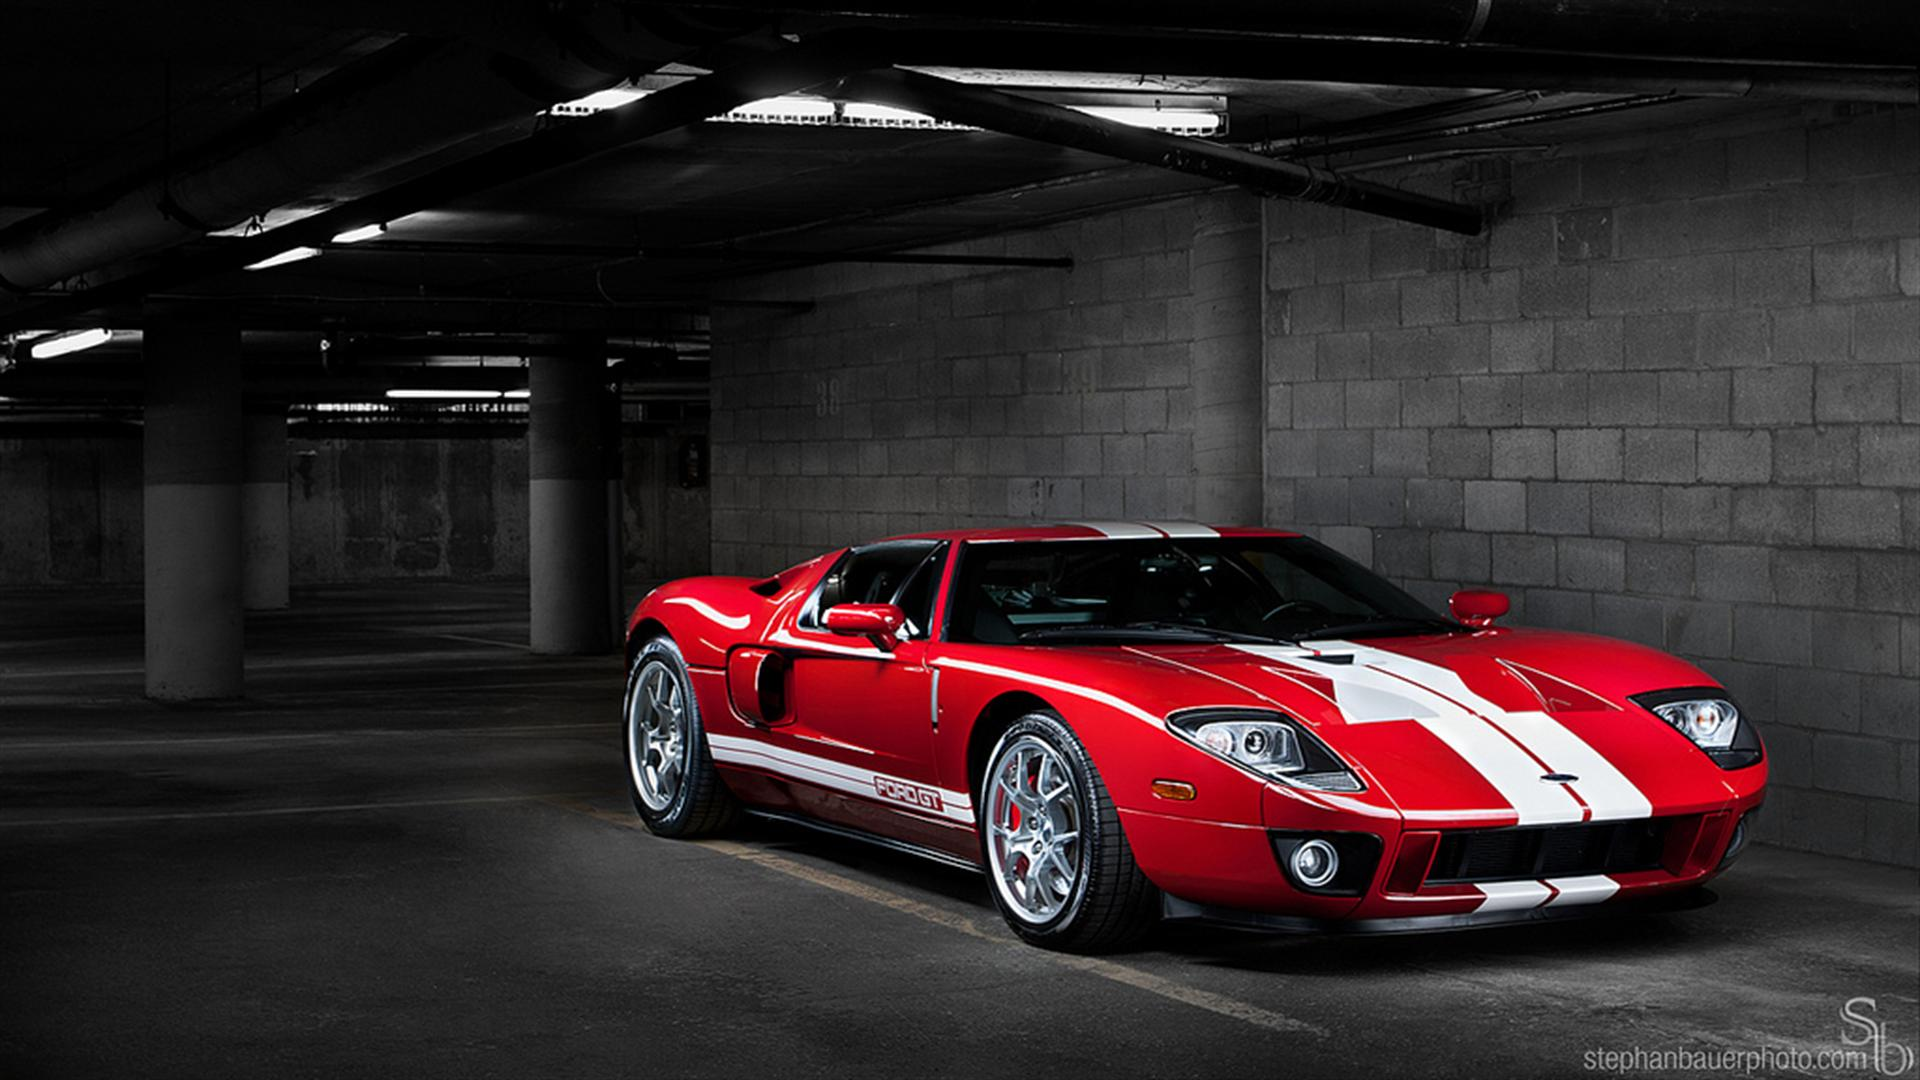 ford gt black 1080p hd wallpaper car Car Pictures 1920x1080